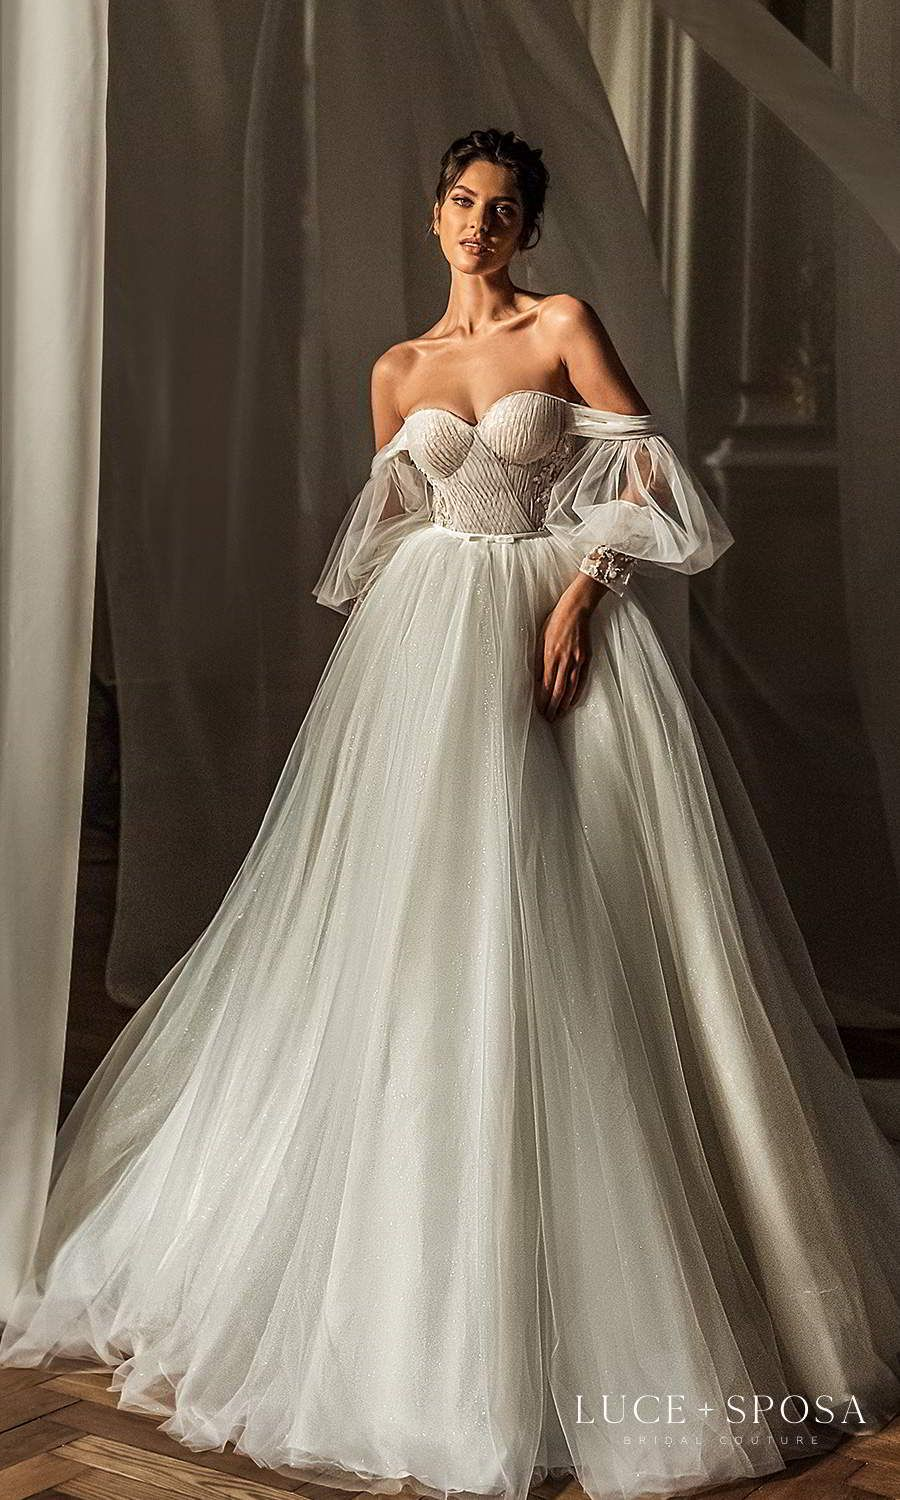 """Luce Sposa 2021 """"Shades of Couture"""" Wedding Dresses"""